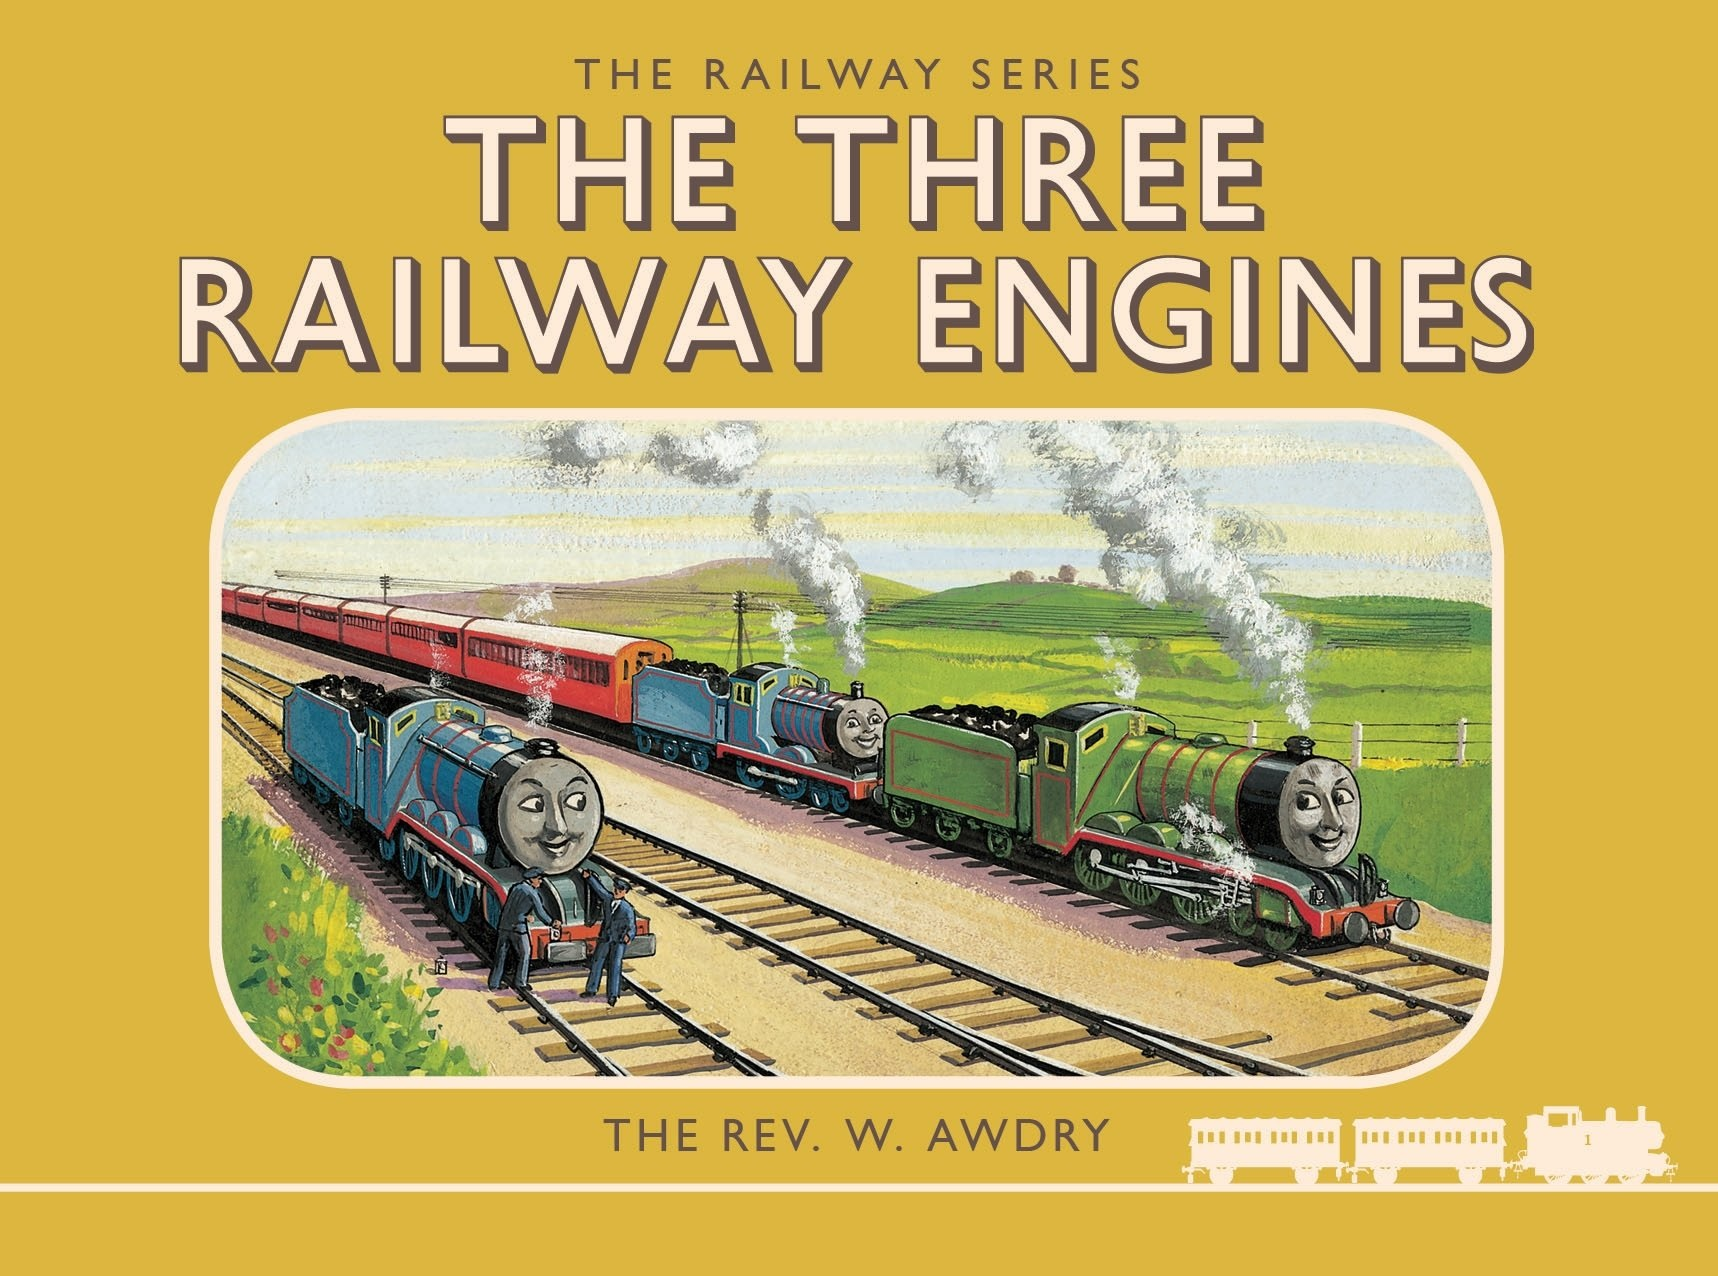 The Three Railway Engines book collection Rev W Awdry Thomas